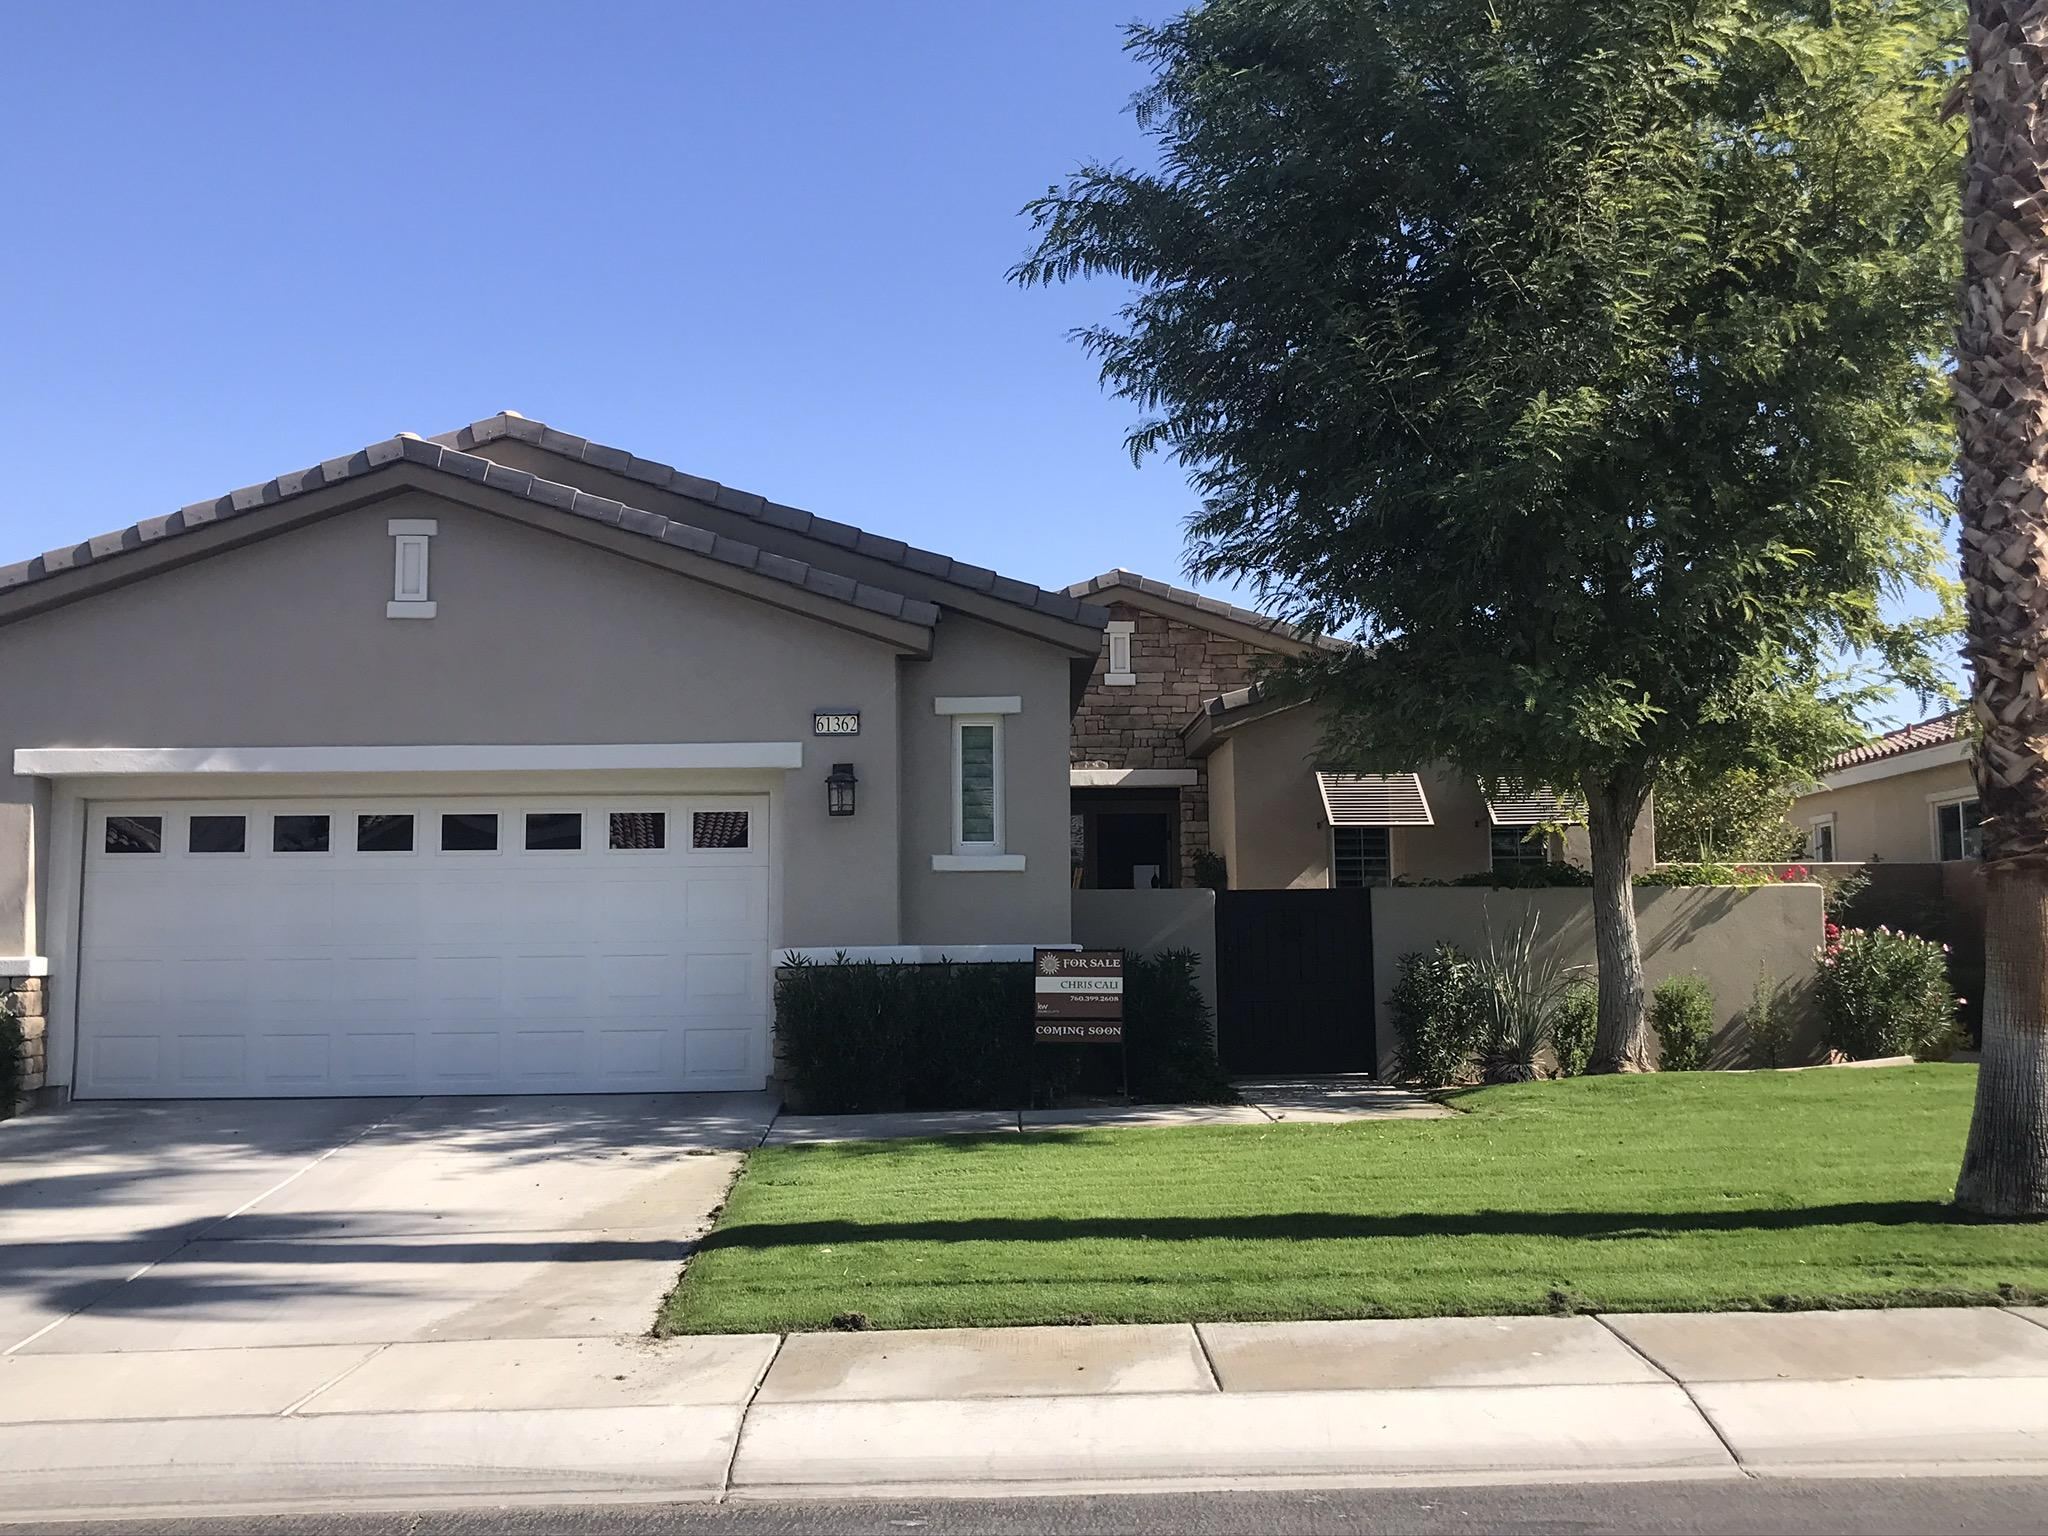 Photo of 61362 Living Stone Drive, La Quinta, CA 92253